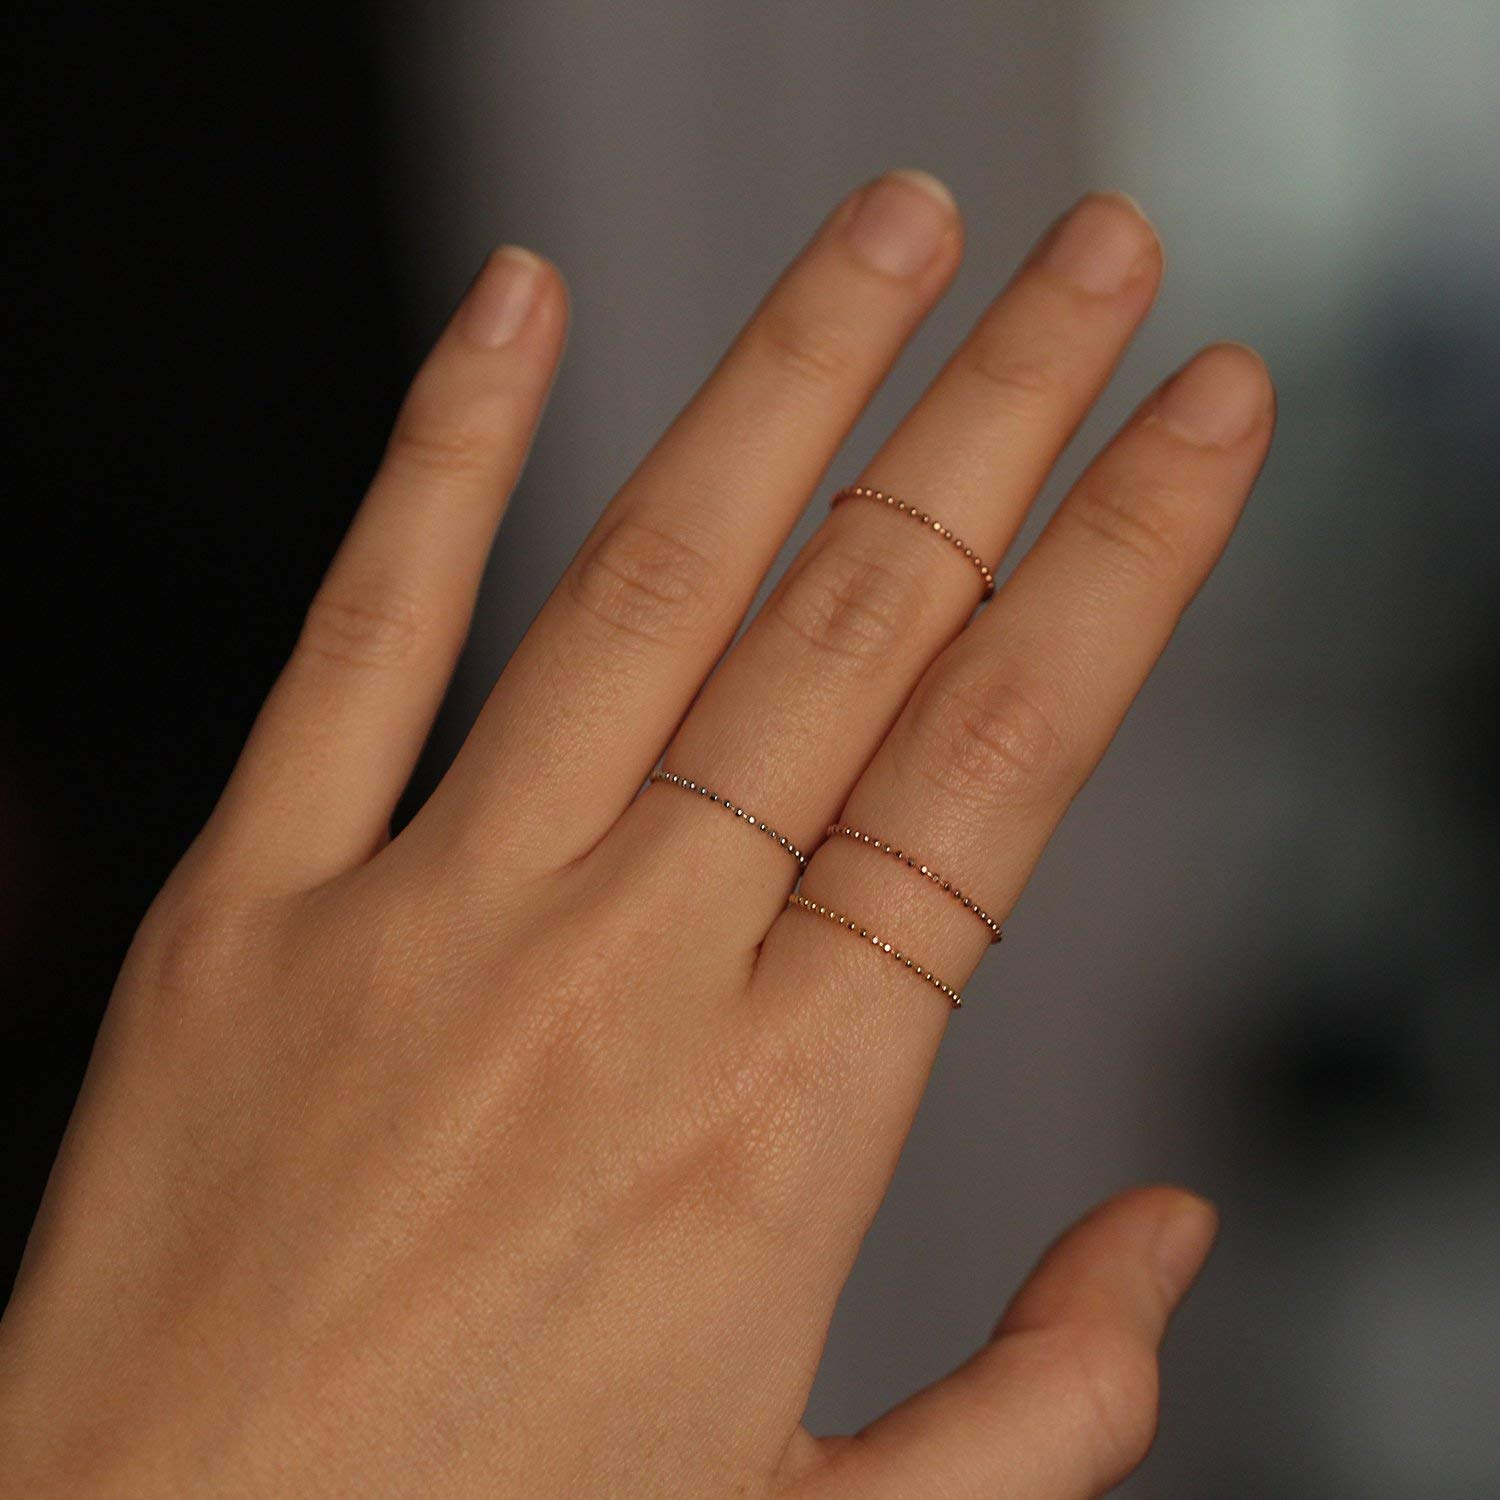 Dainty Gold Chain Ring 24k Gold Plated Ring Thin Band Ring Dainty Gold Ring Gold Chain Ring Double Dainty Ring Minimalist Ring